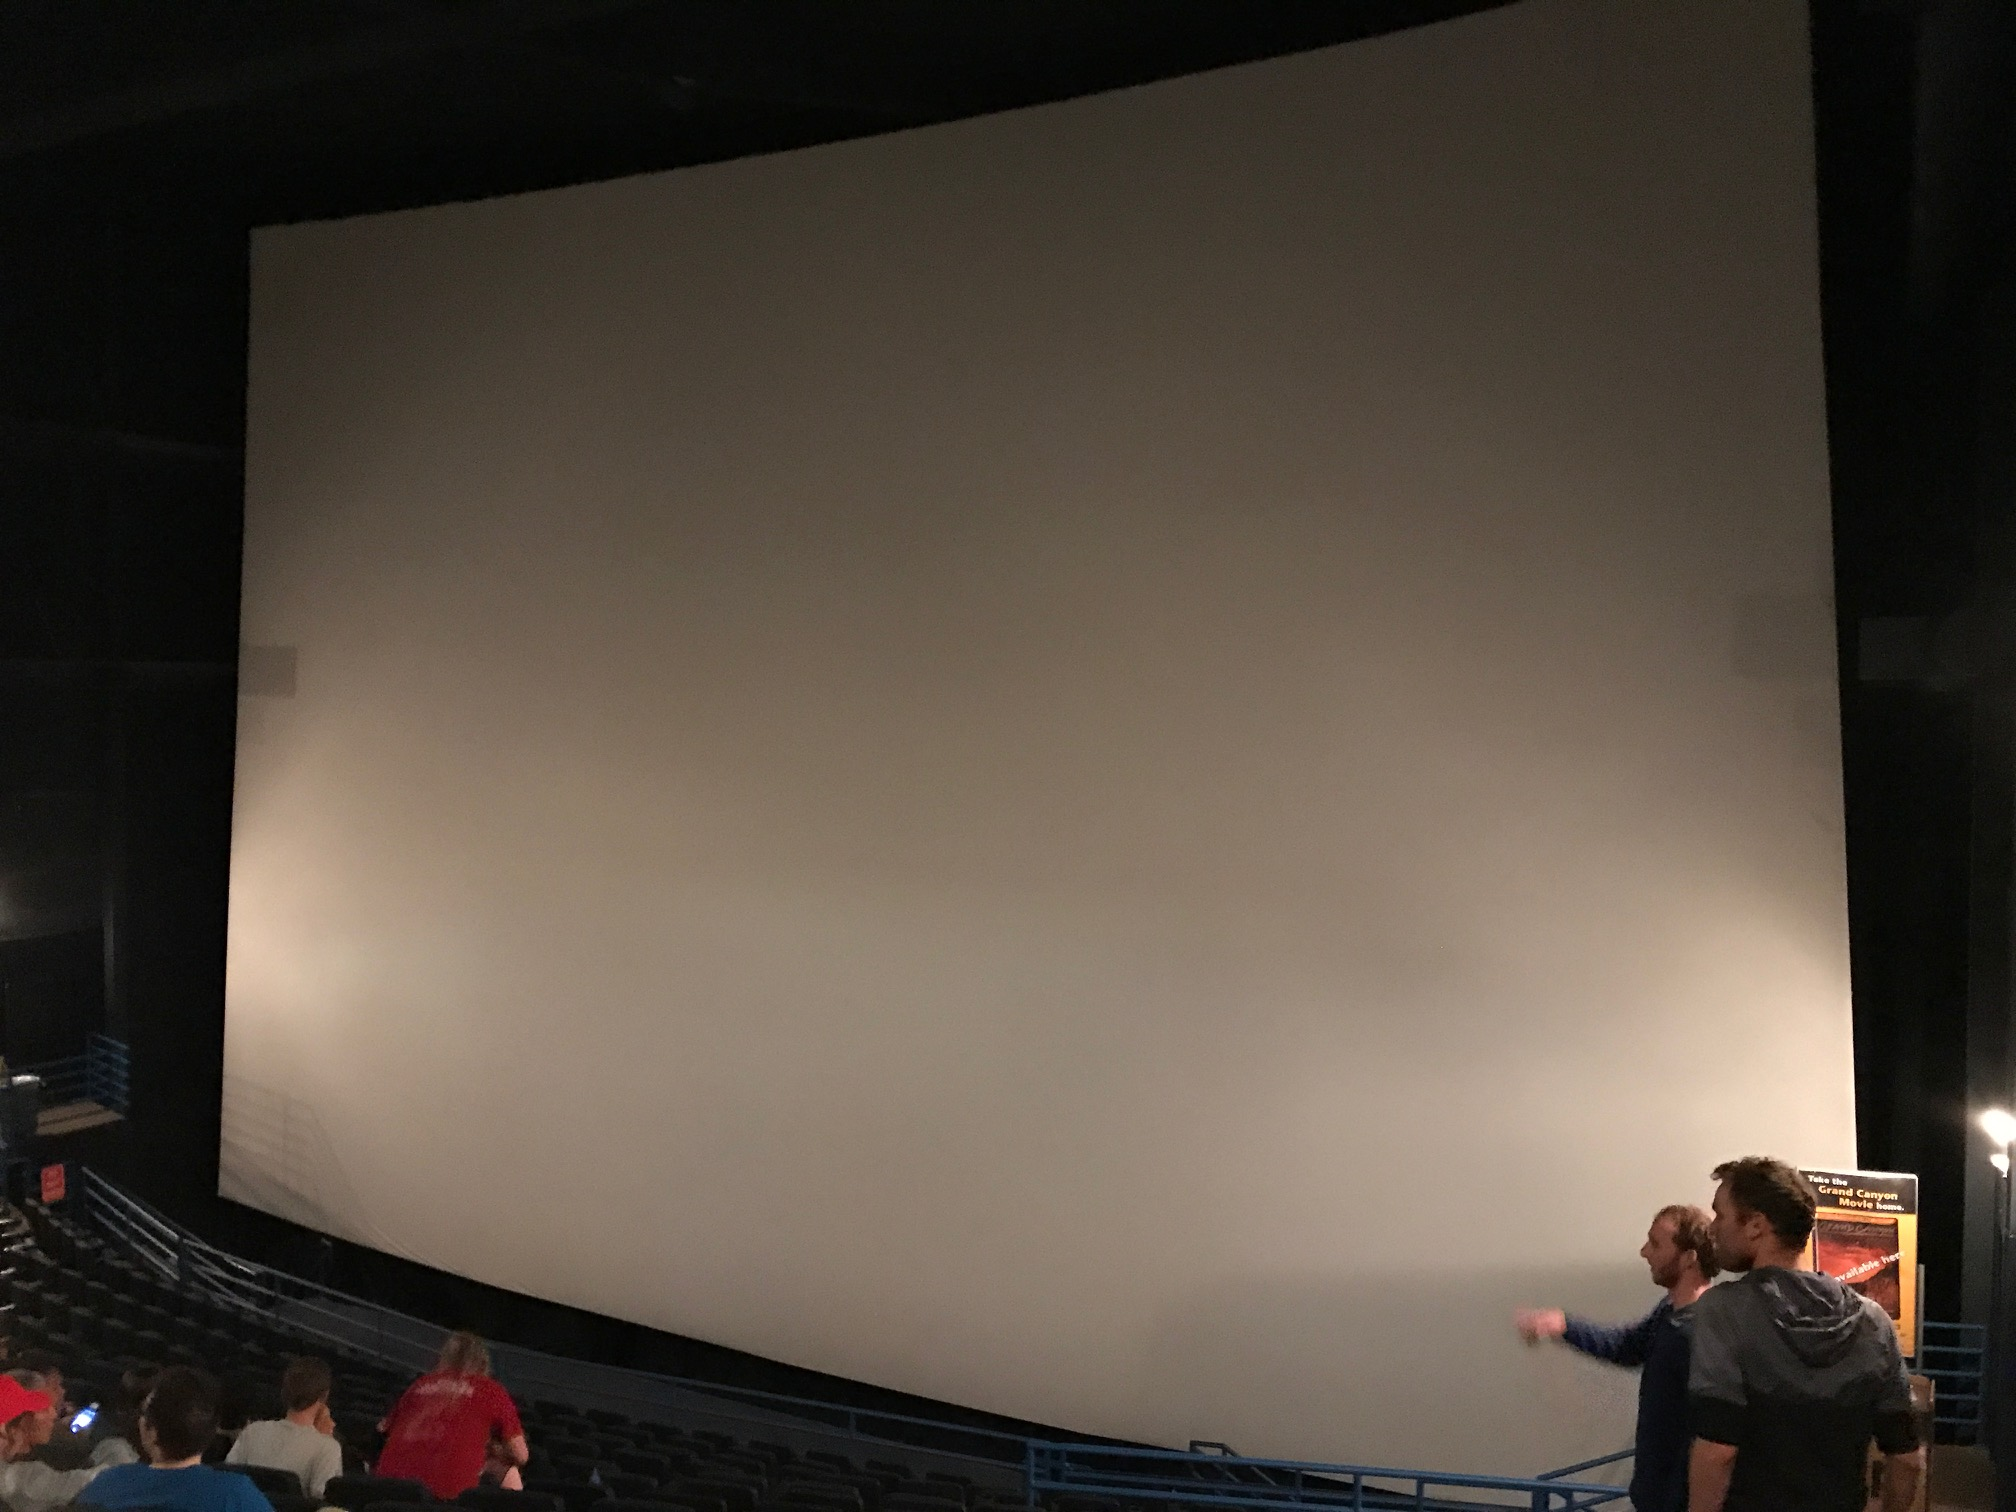 National Geographic IMAX screen